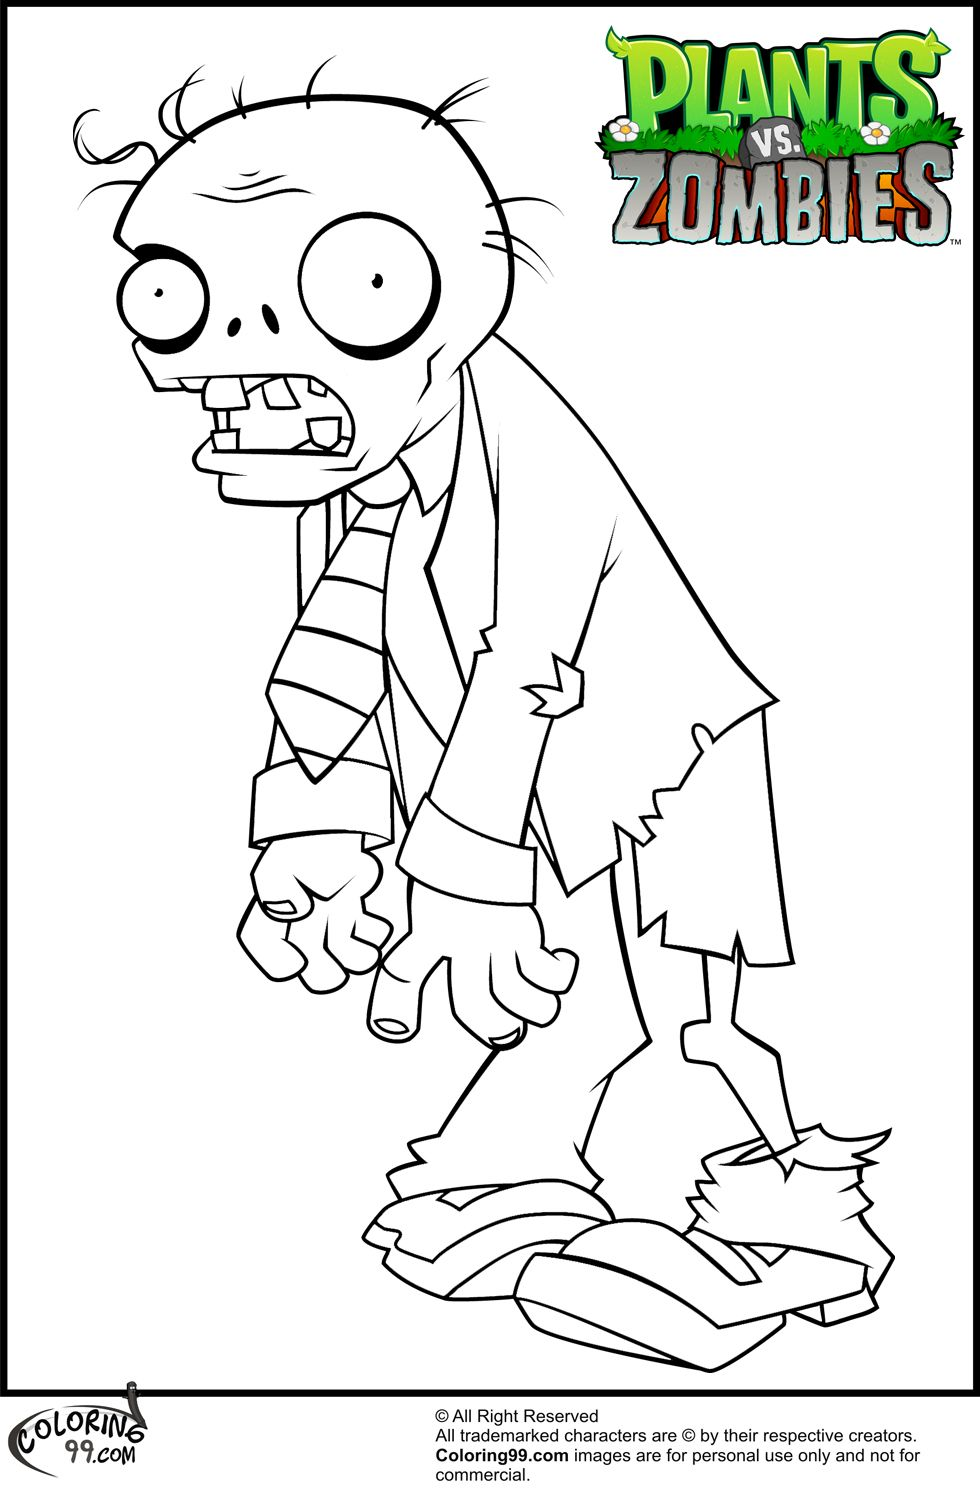 Plants v zombies coloring pages - Plants Vs Zombies Suit Zombie Coloring Pages Jpg